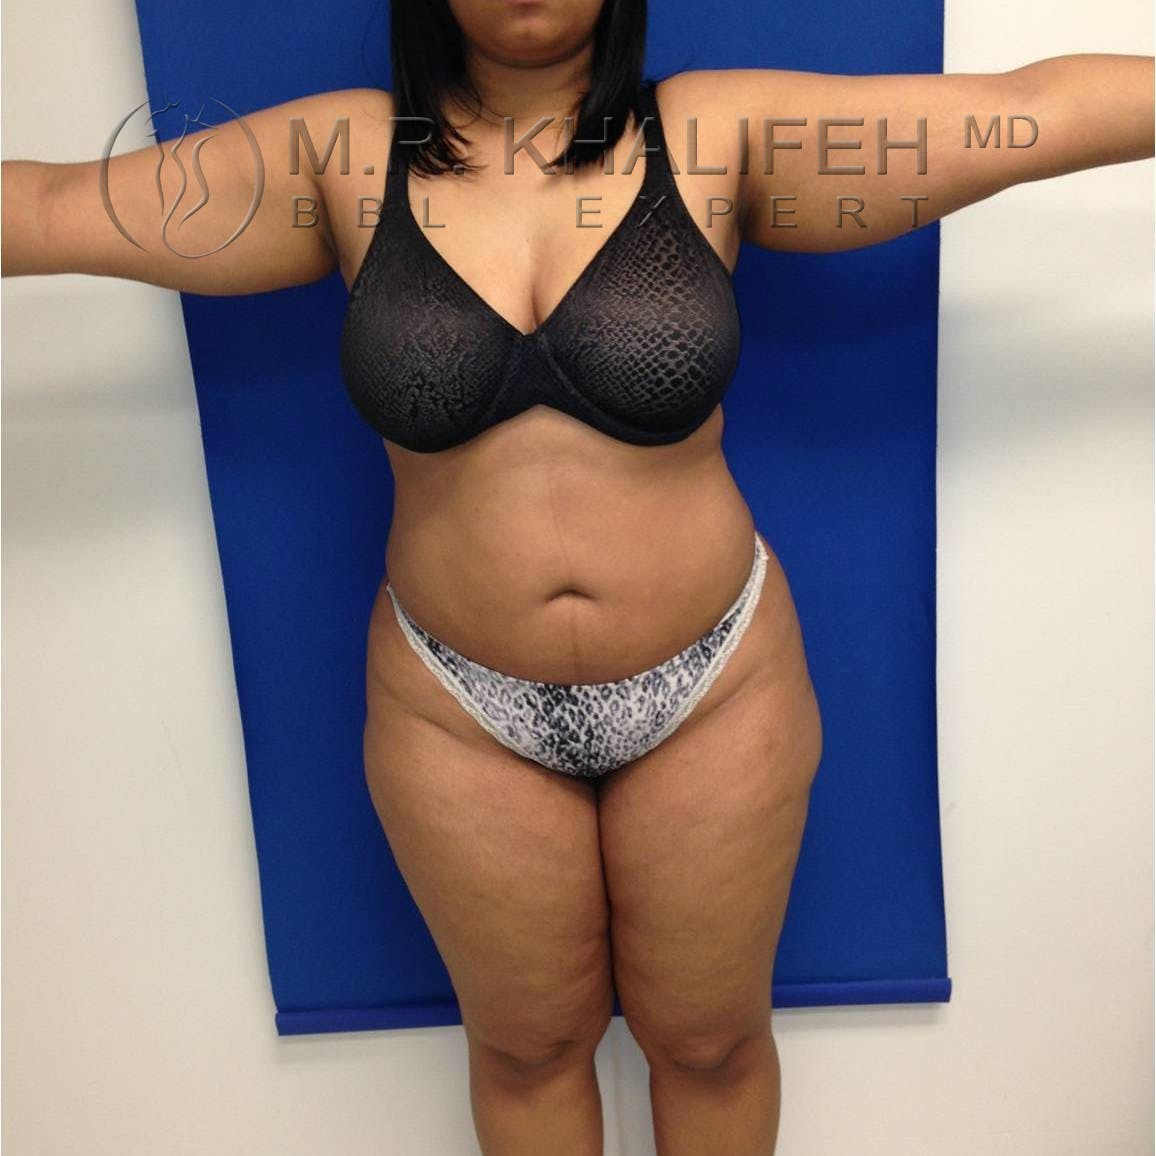 Flank-Lower Back Liposuction Gallery - Patient 3719190 - Image 8